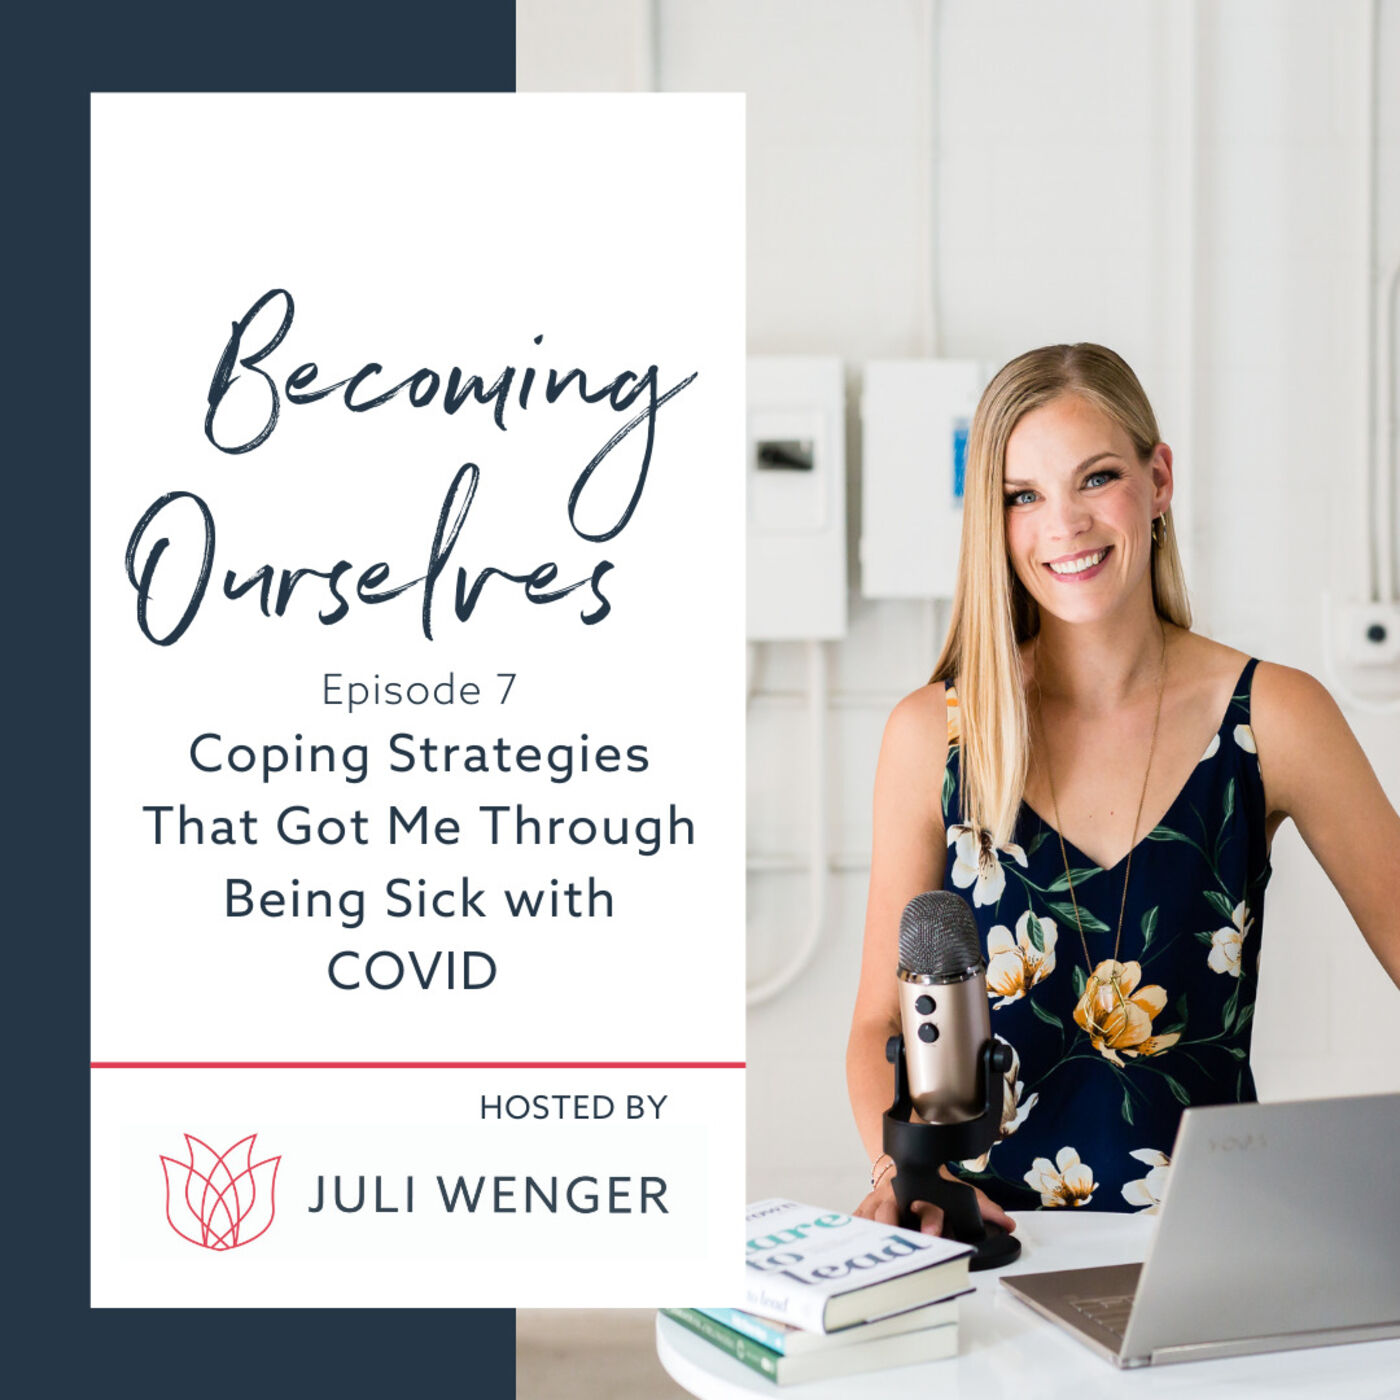 8 Coping Strategies That Got Me Through Being Sick with COVID